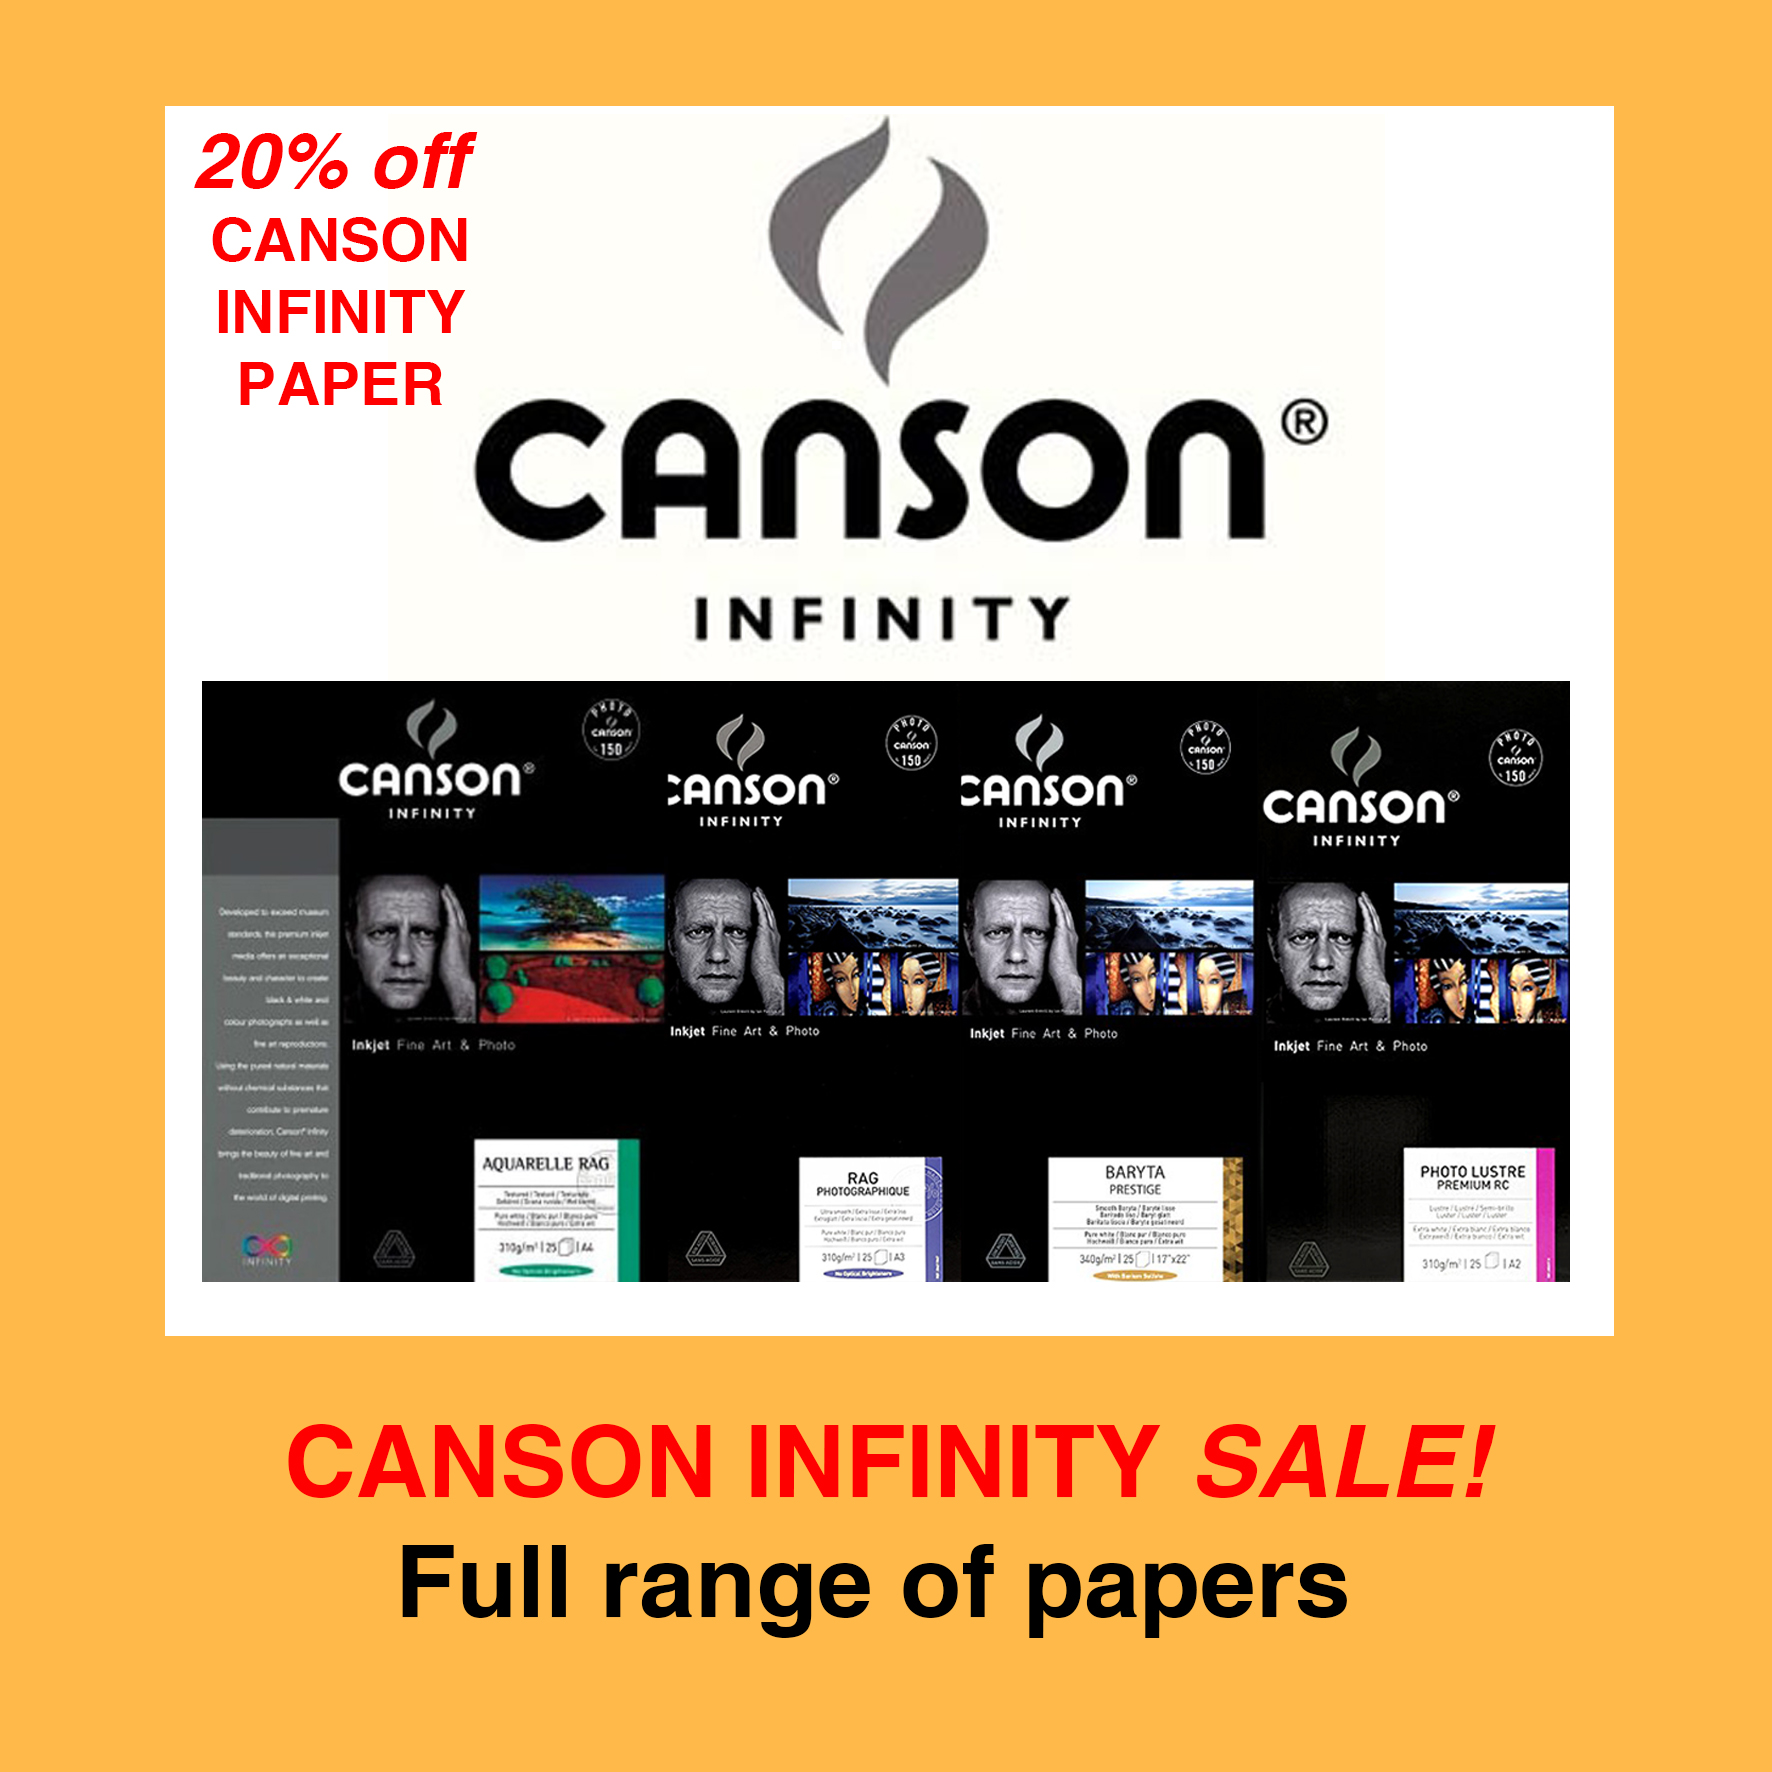 SECOND 9 Canson Infinity Papers